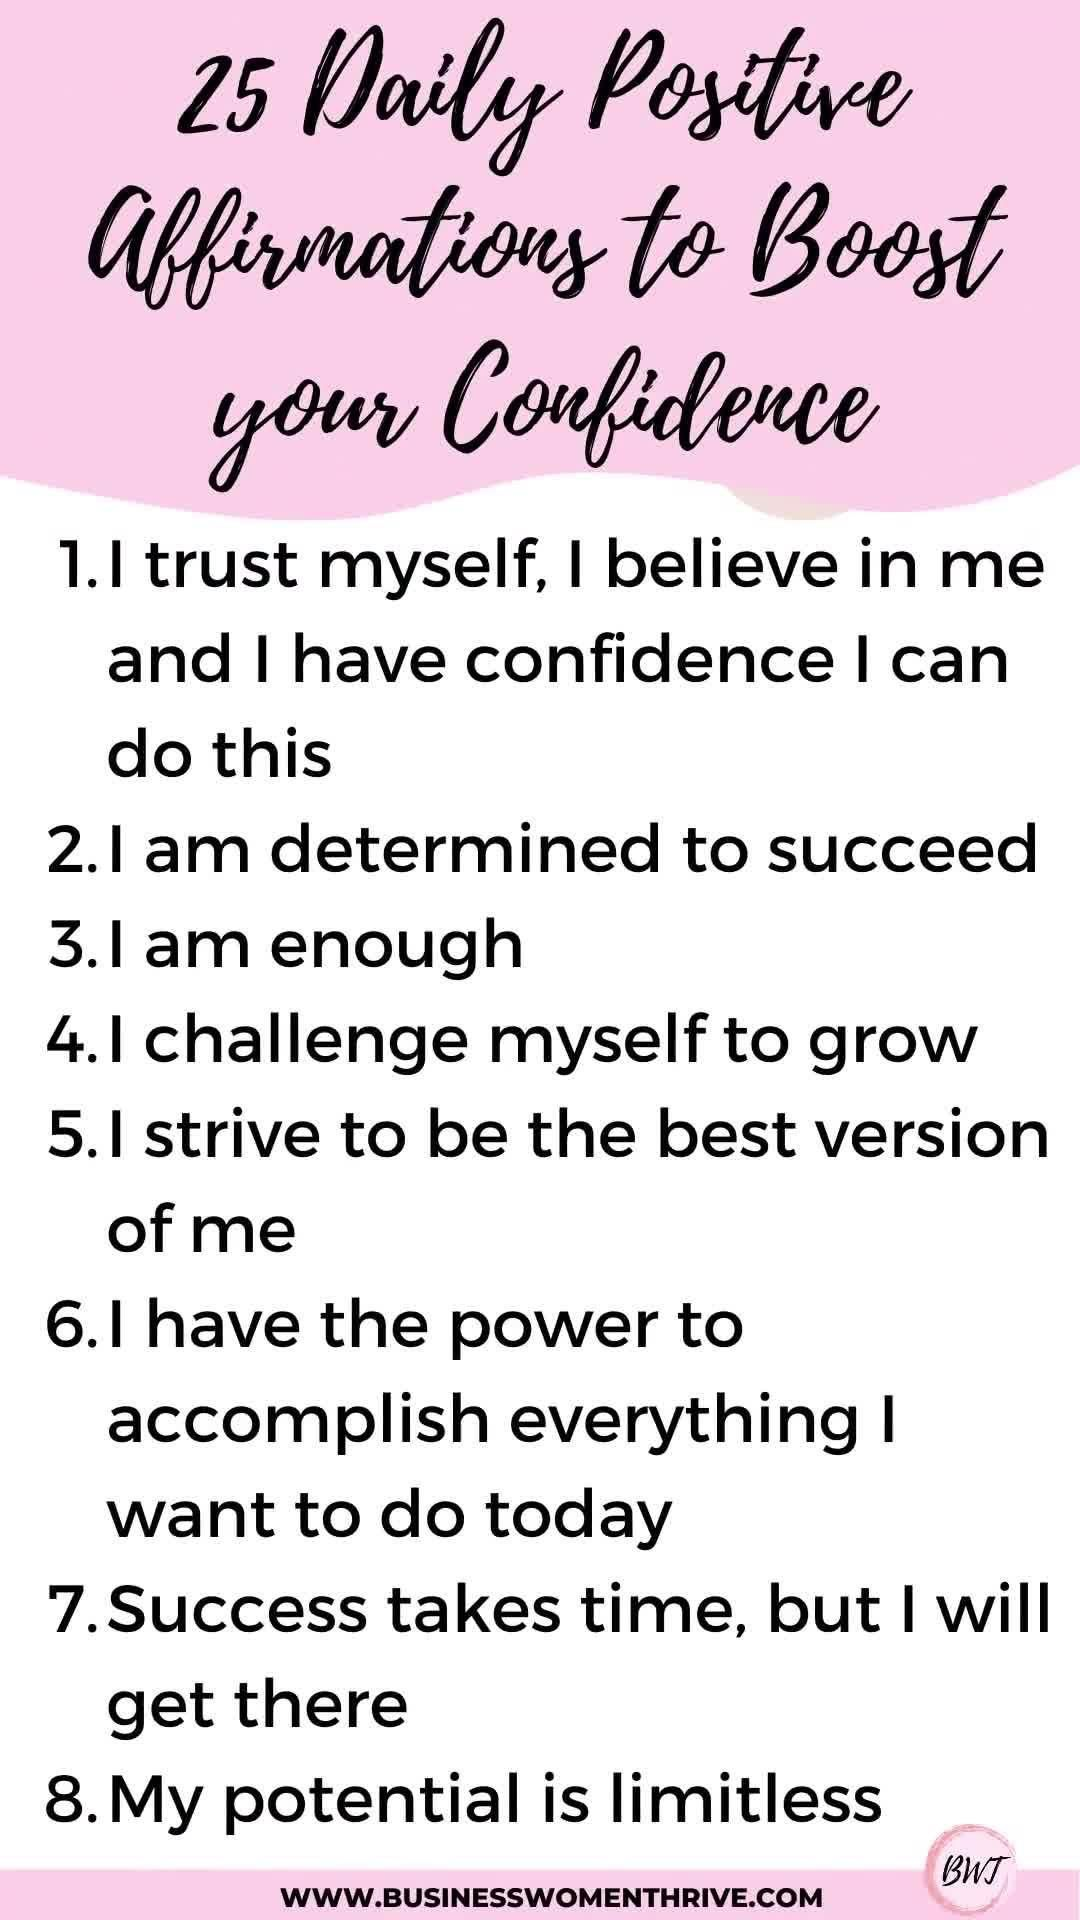 25 Daily Positive Affirmations to Boost your Confidence